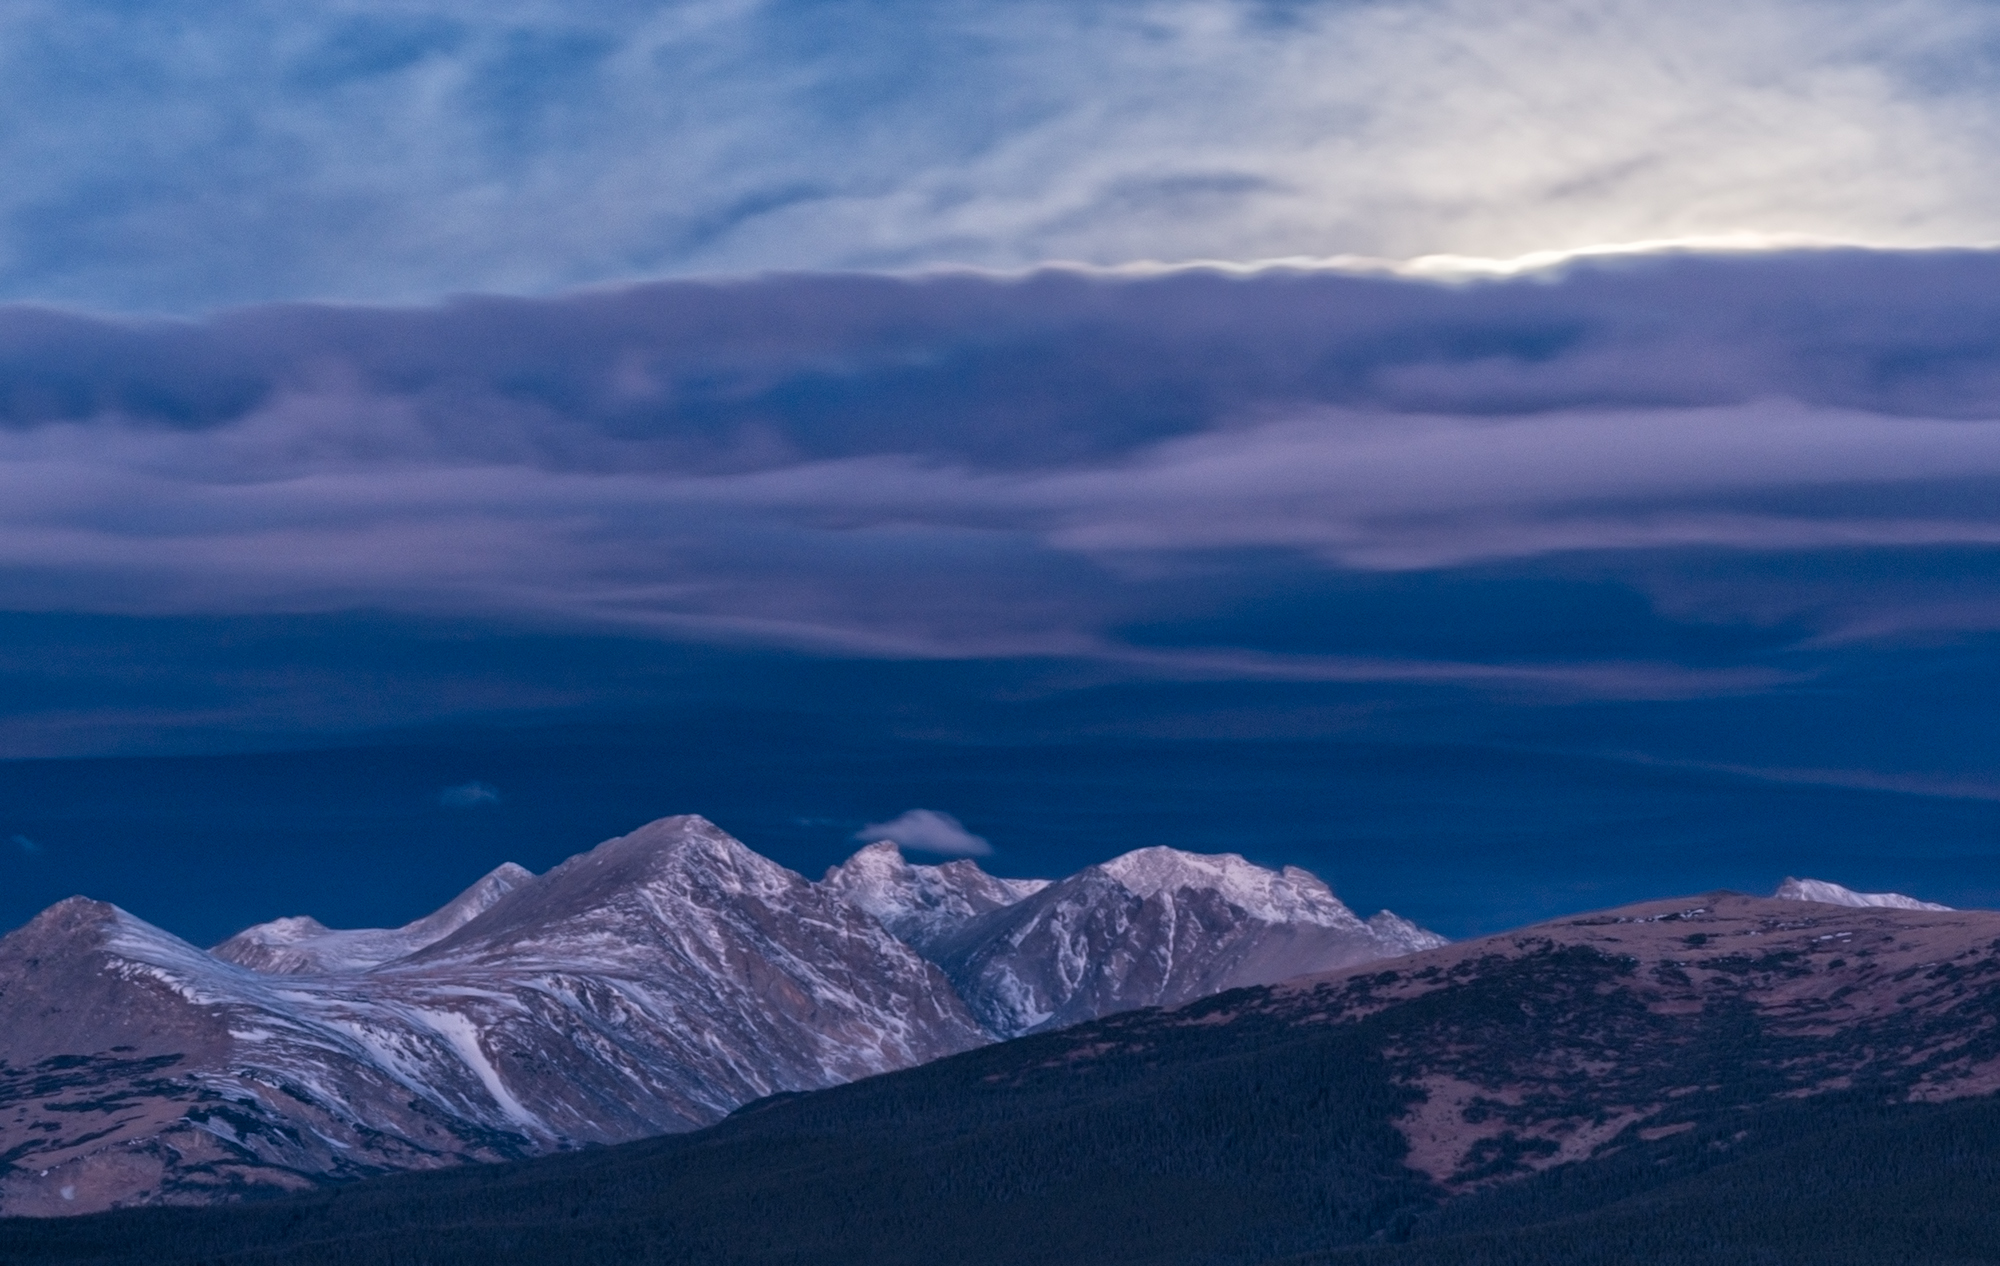 Moonlight Over Indian Peaks, #1. From Sugarloaf Mountain, Colorado, 2016